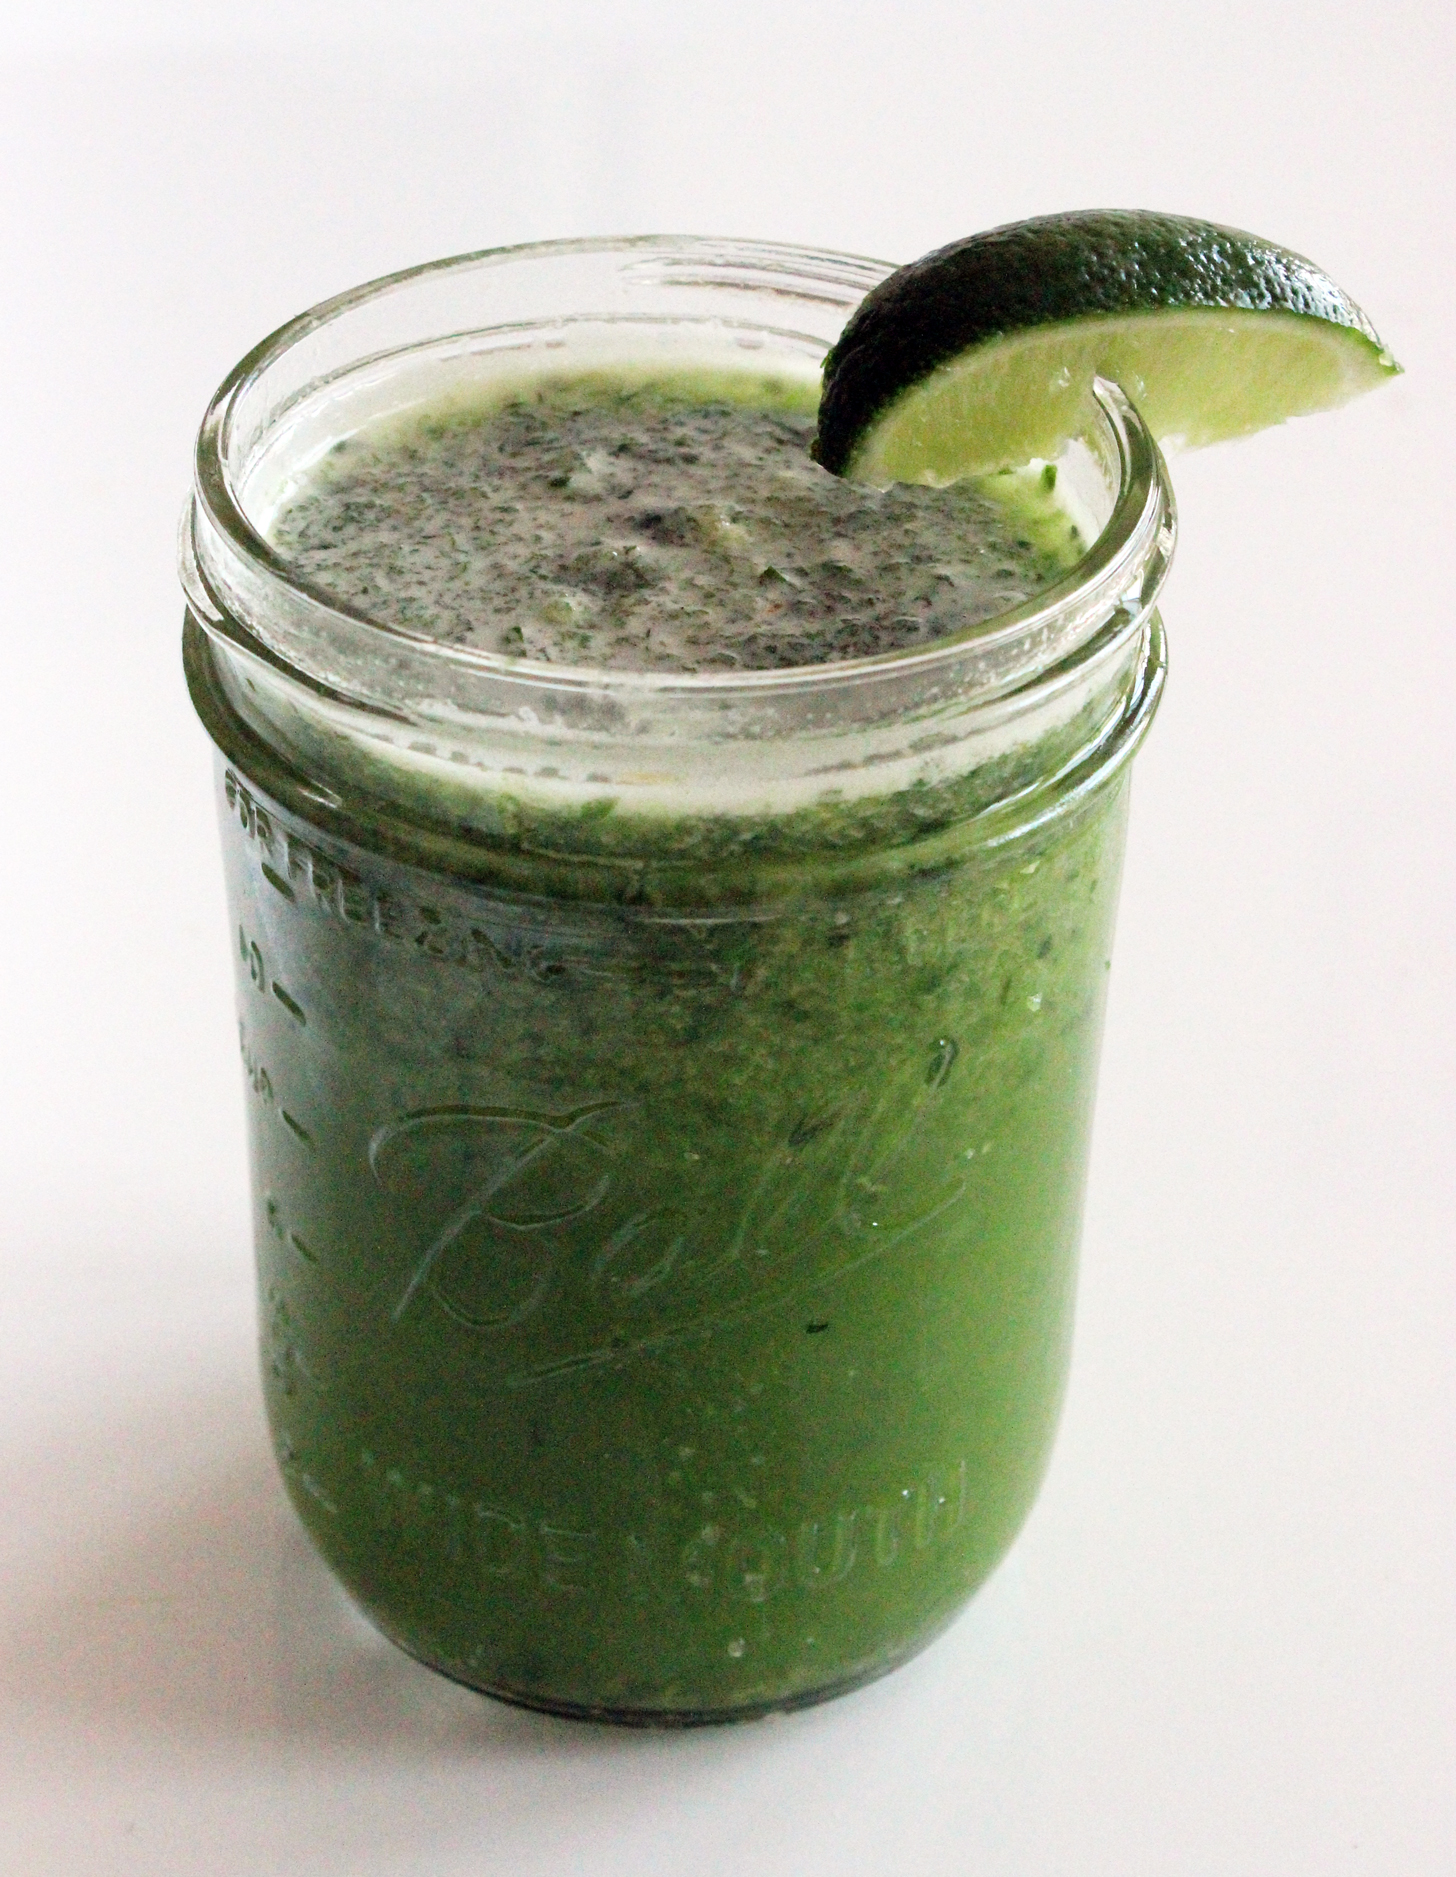 Midmorning Snack: Green Smoothie